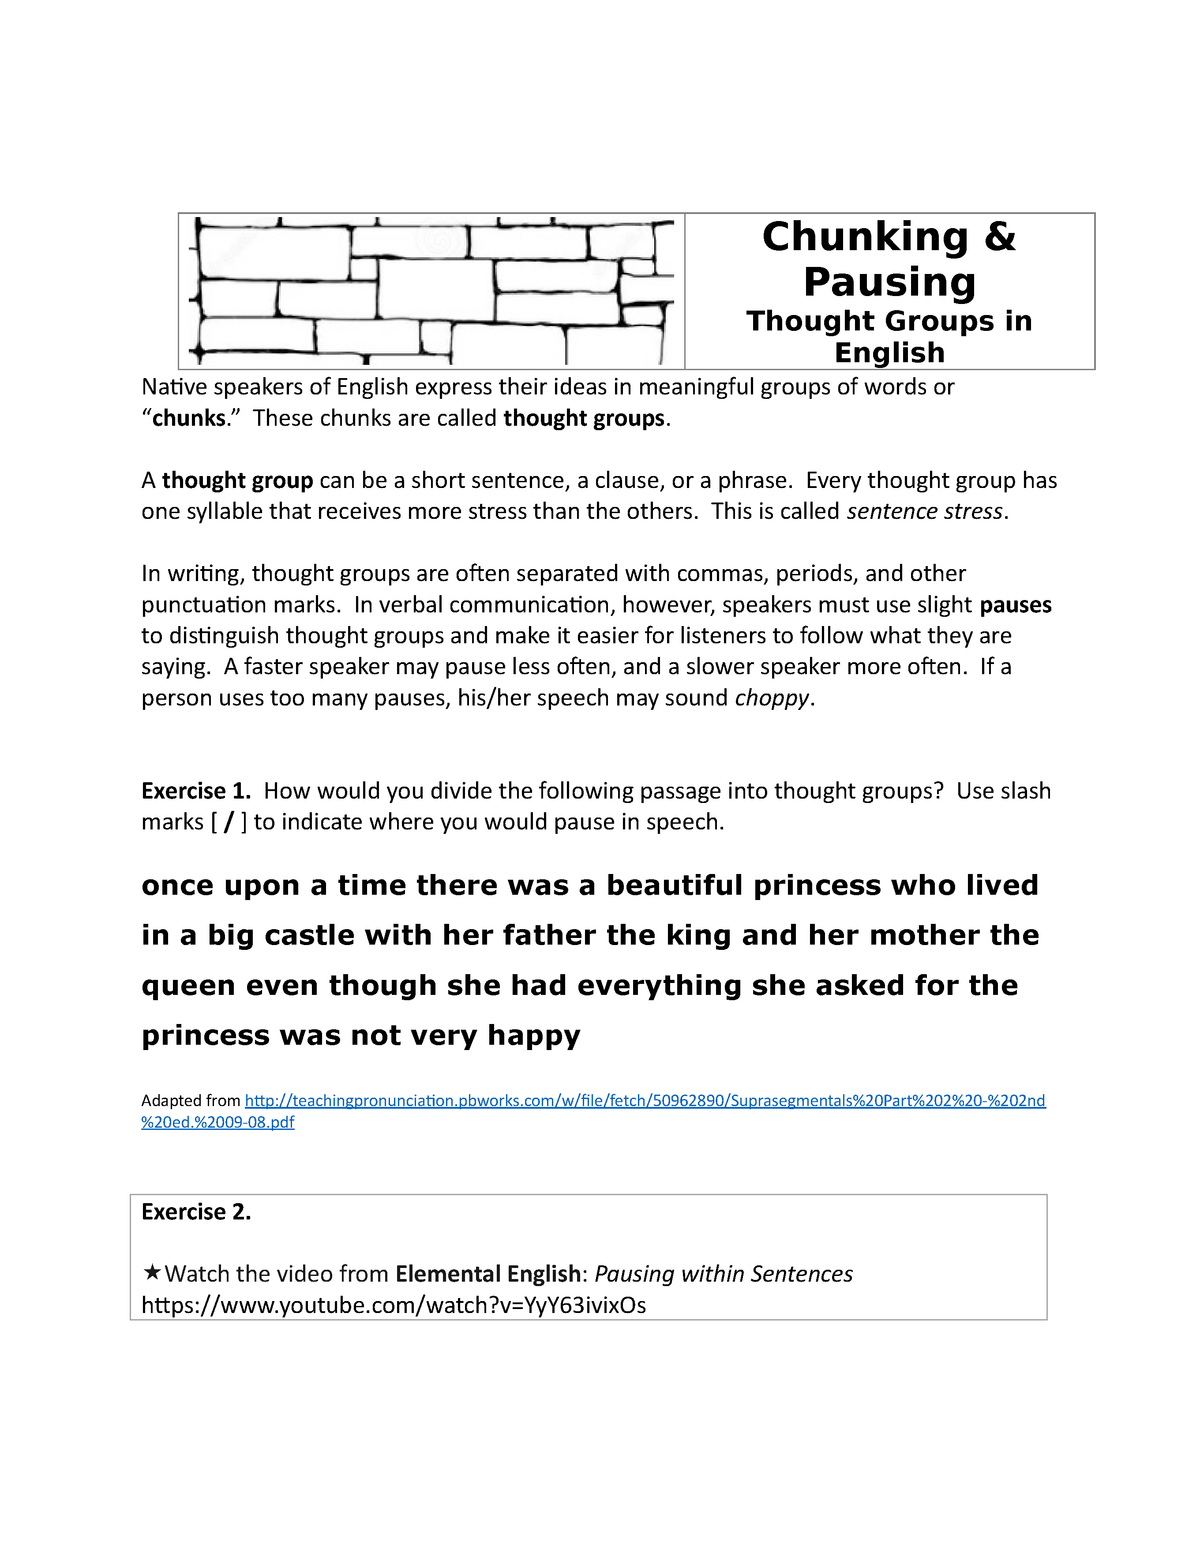 Chunking & Pausing-Thought Groups in English Fall 2018 - Emls 101R